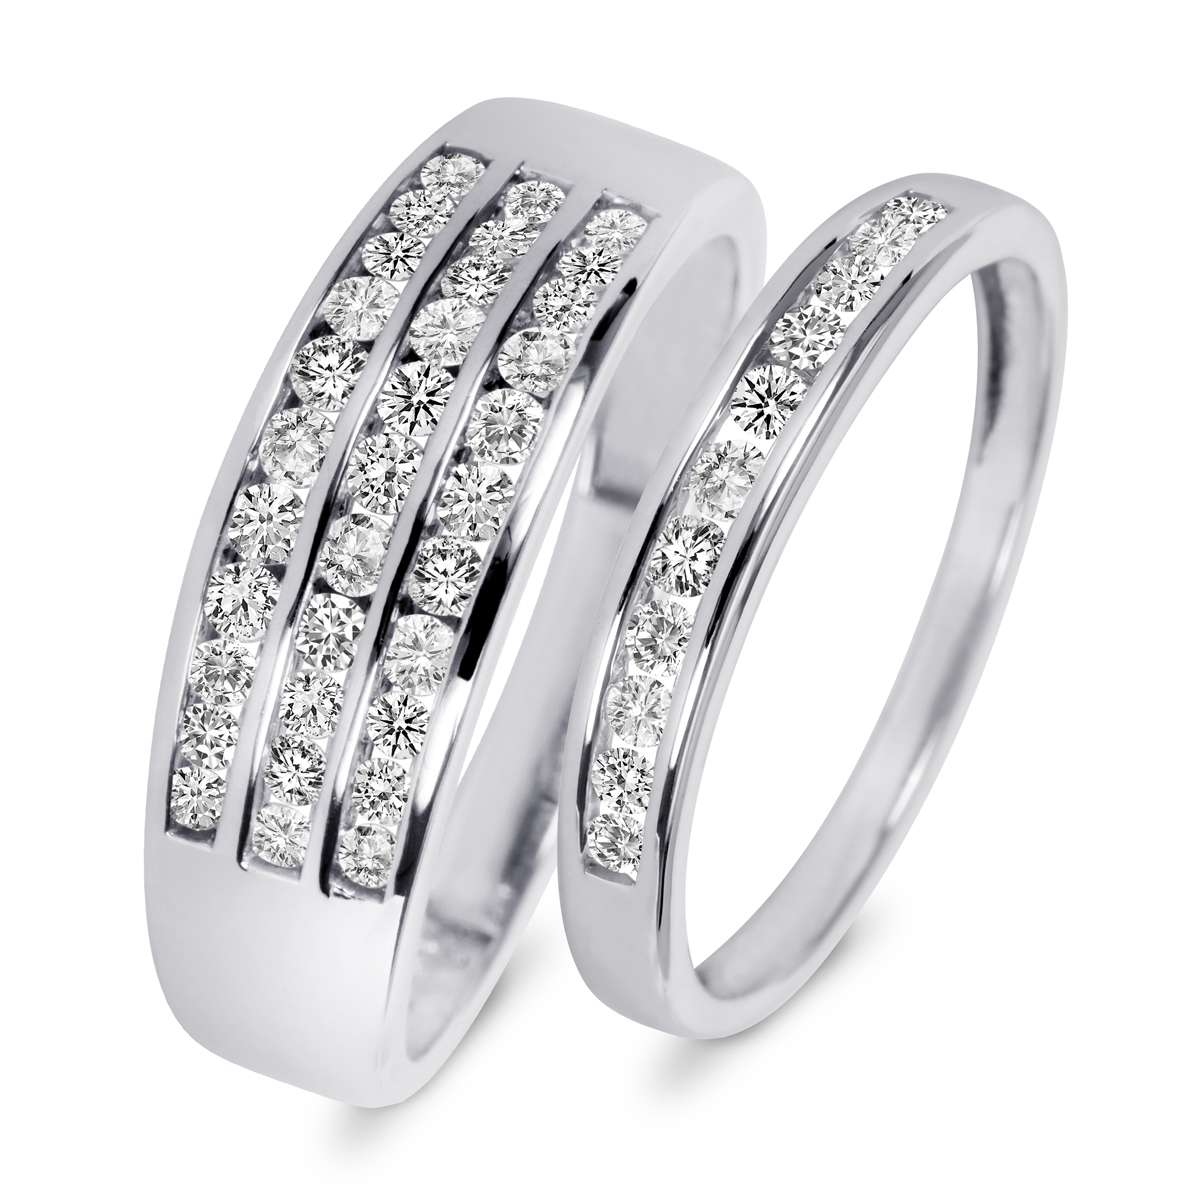 7 8 carat t w diamond his and hers wedding rings 10k white gold